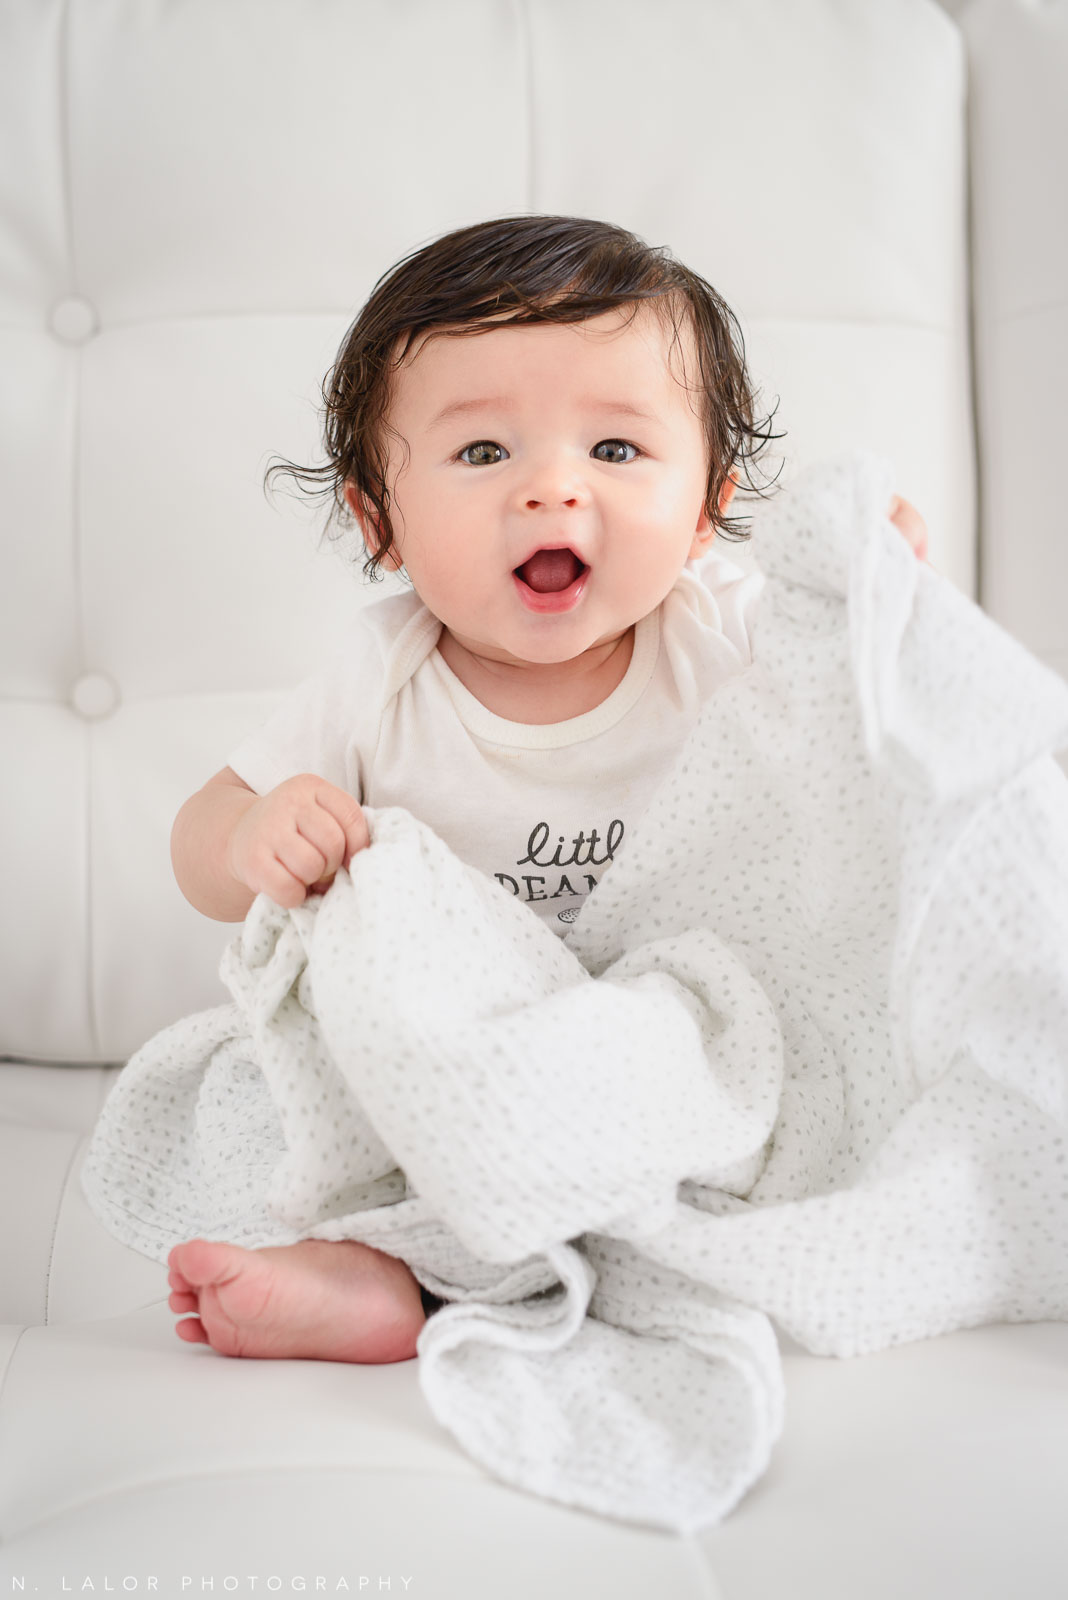 Favorite toy, a blanket! 6-month old baby studio photoshoot with N. Lalor Photography in Greenwich, Connecticut.